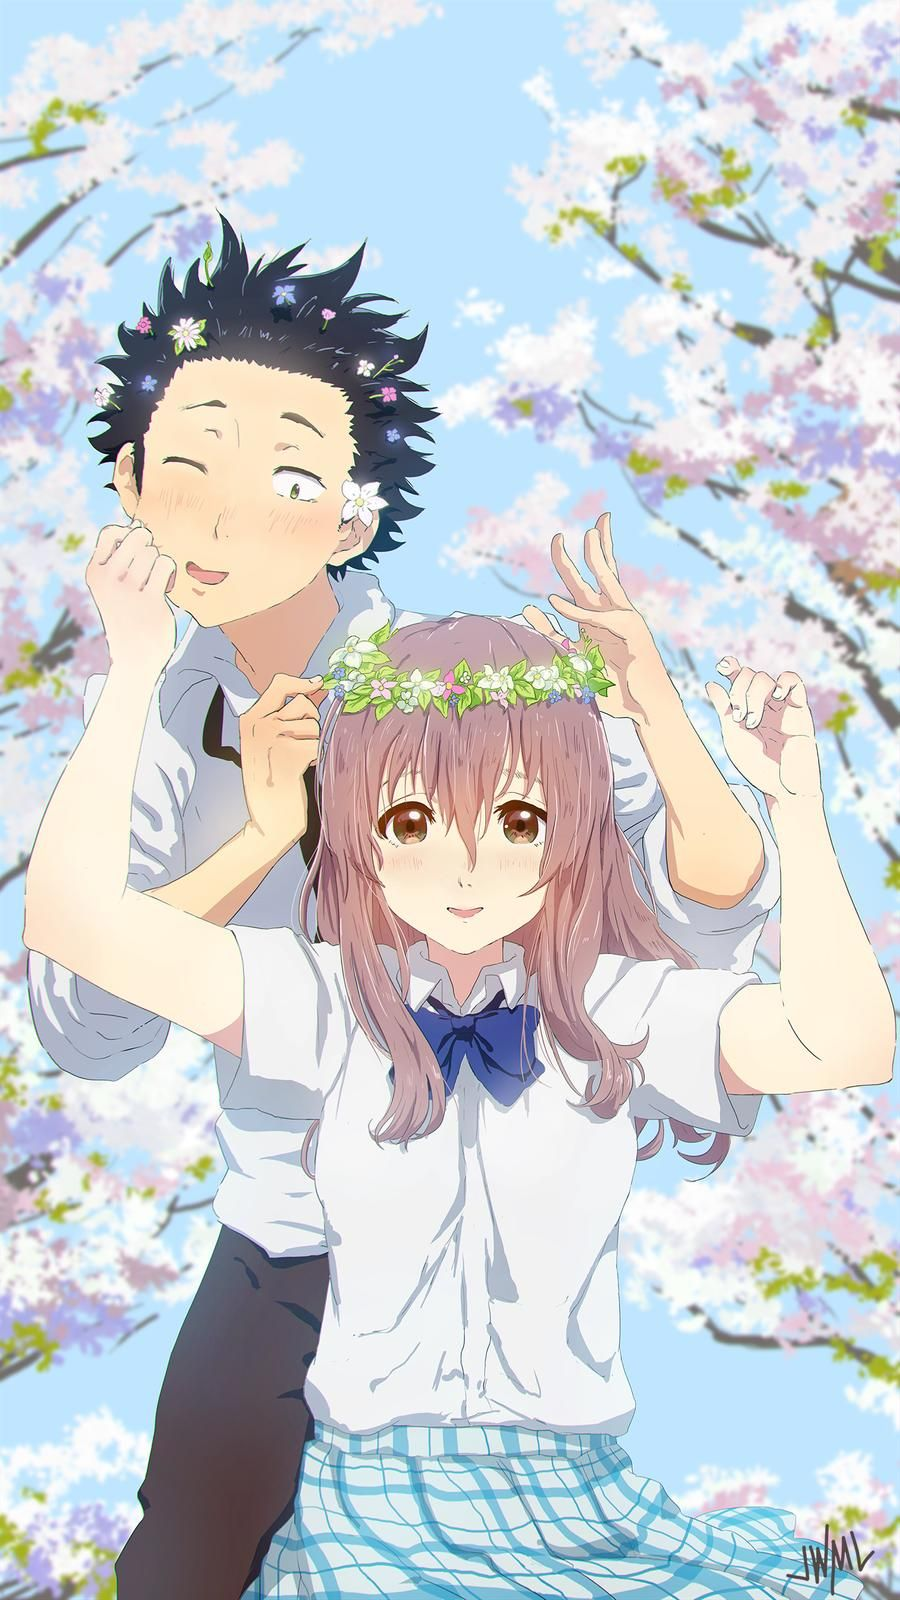 A Silent Voice || Fanart by SteamyTomato on DeviantArt